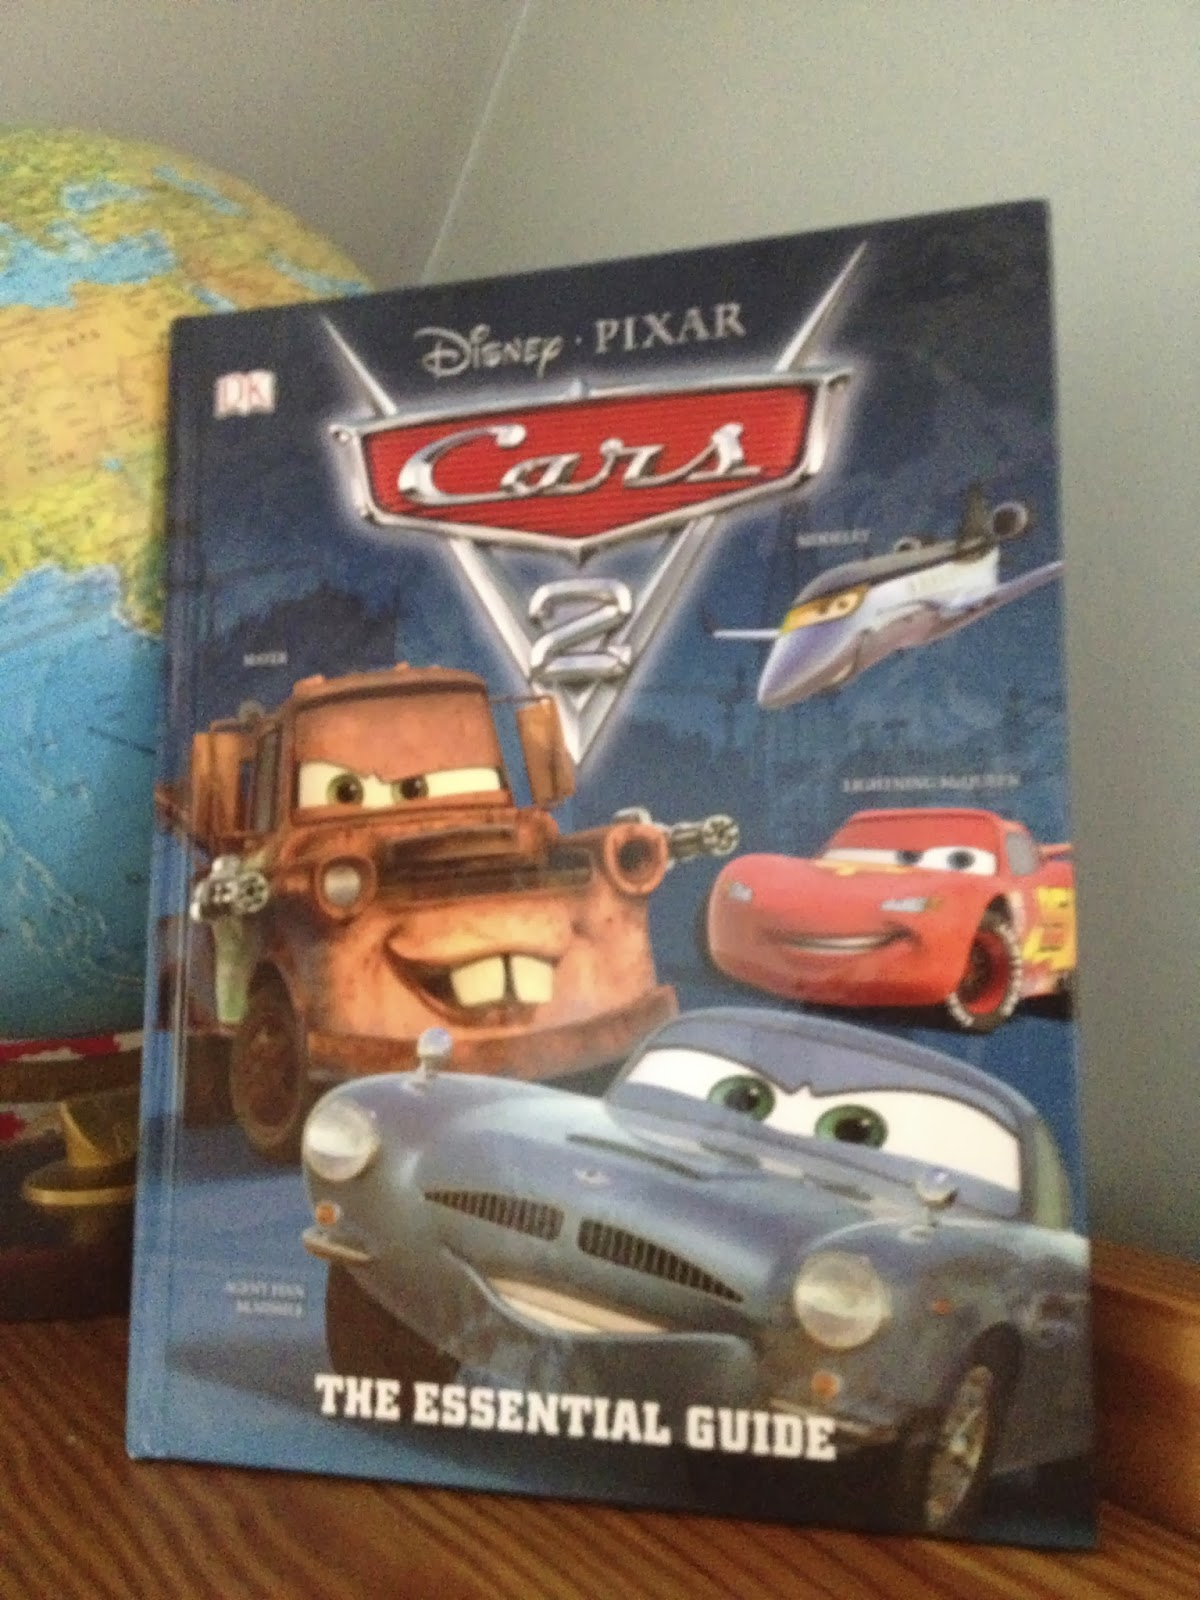 Dan The Pixar Fan Cars The Essential Guide - Cars 2 cool cars book